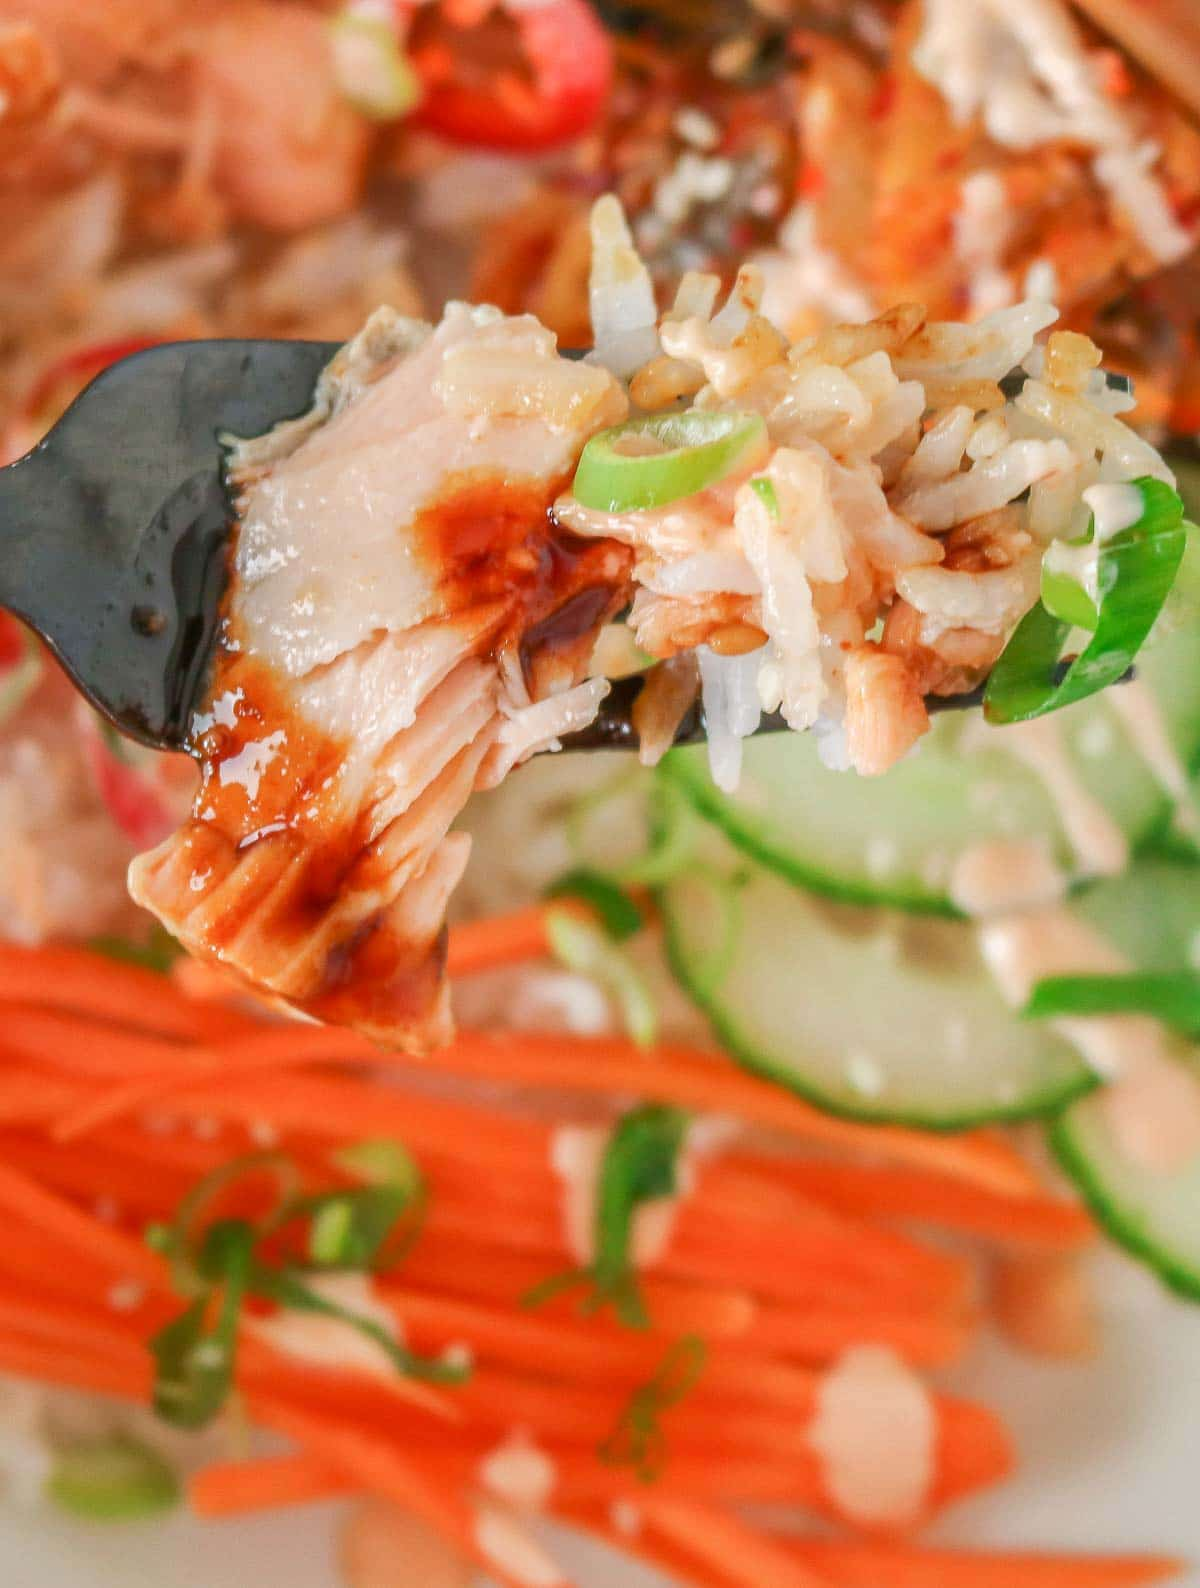 Forkful of glazed salmon, rice and green onion.